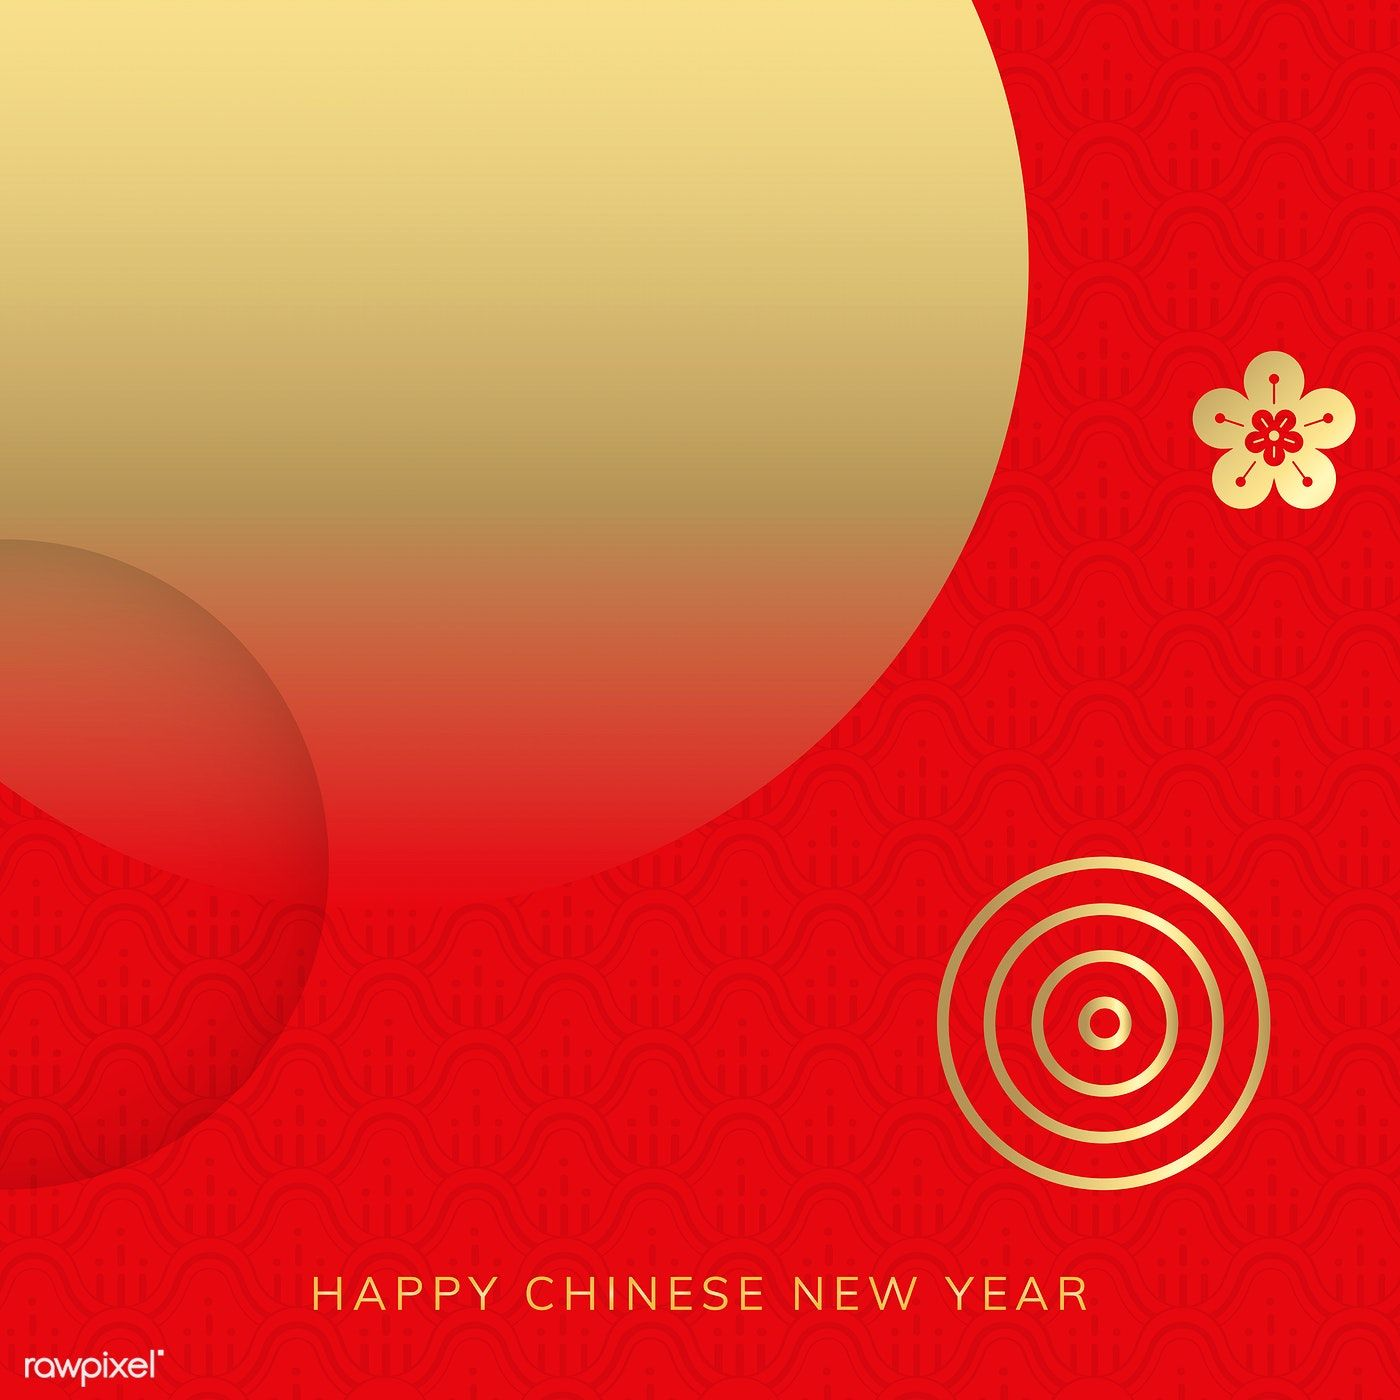 Download Premium Vector Of Happy Chinese New Year 2020 Background